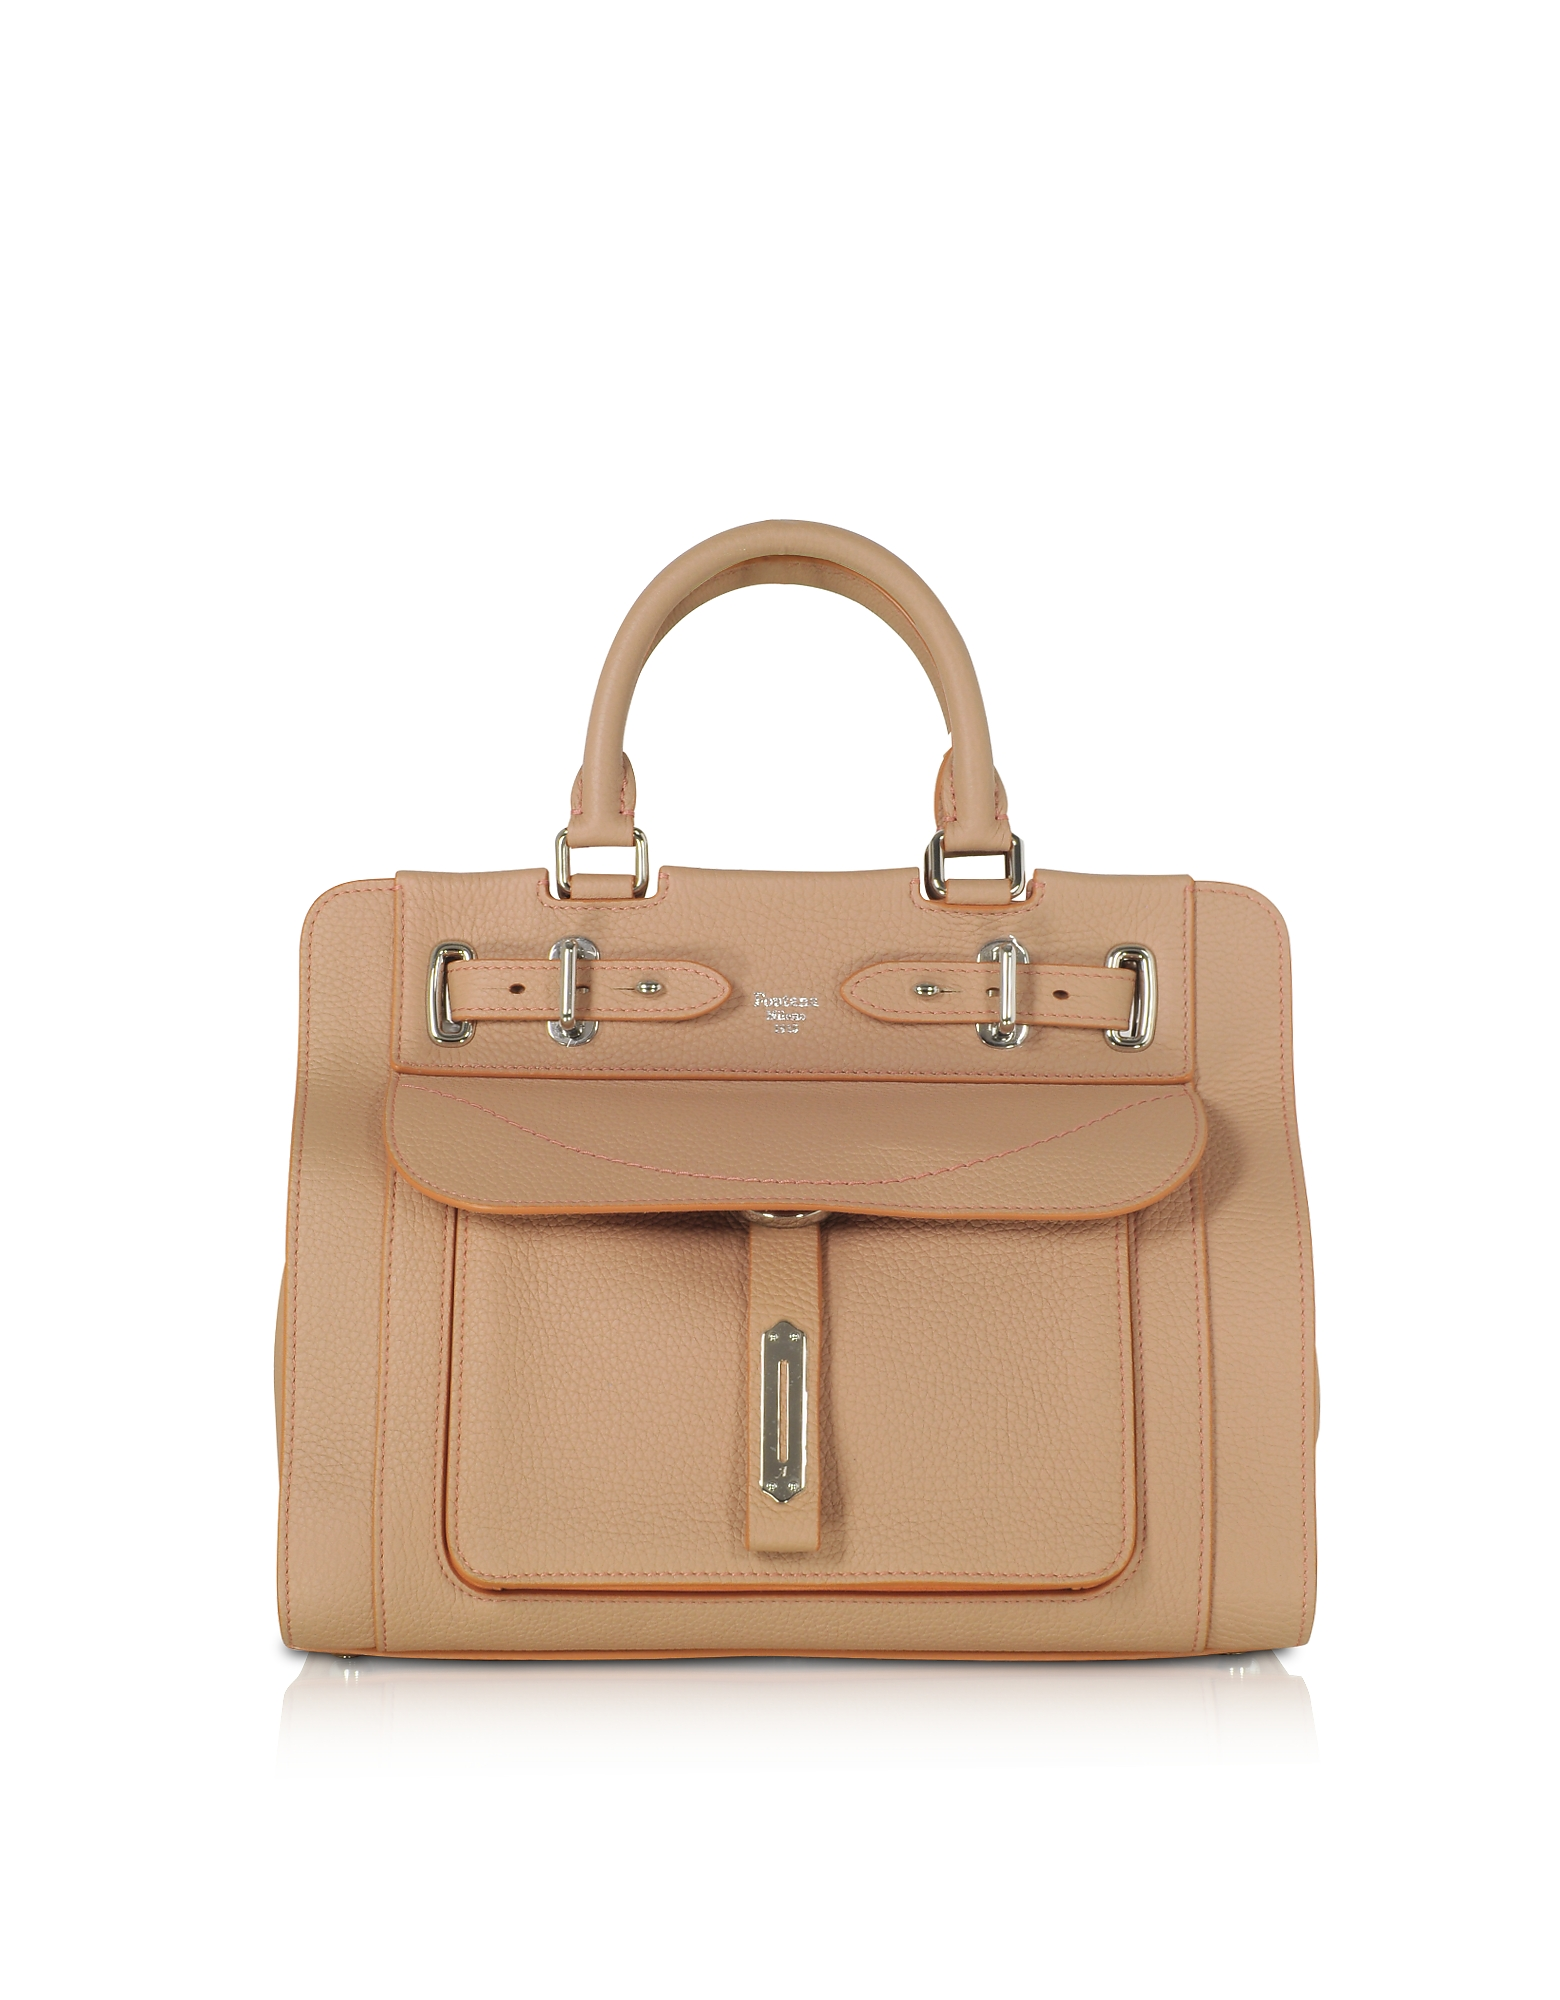 Fontana Milano Designer Handbags, A Small Satchel Bag